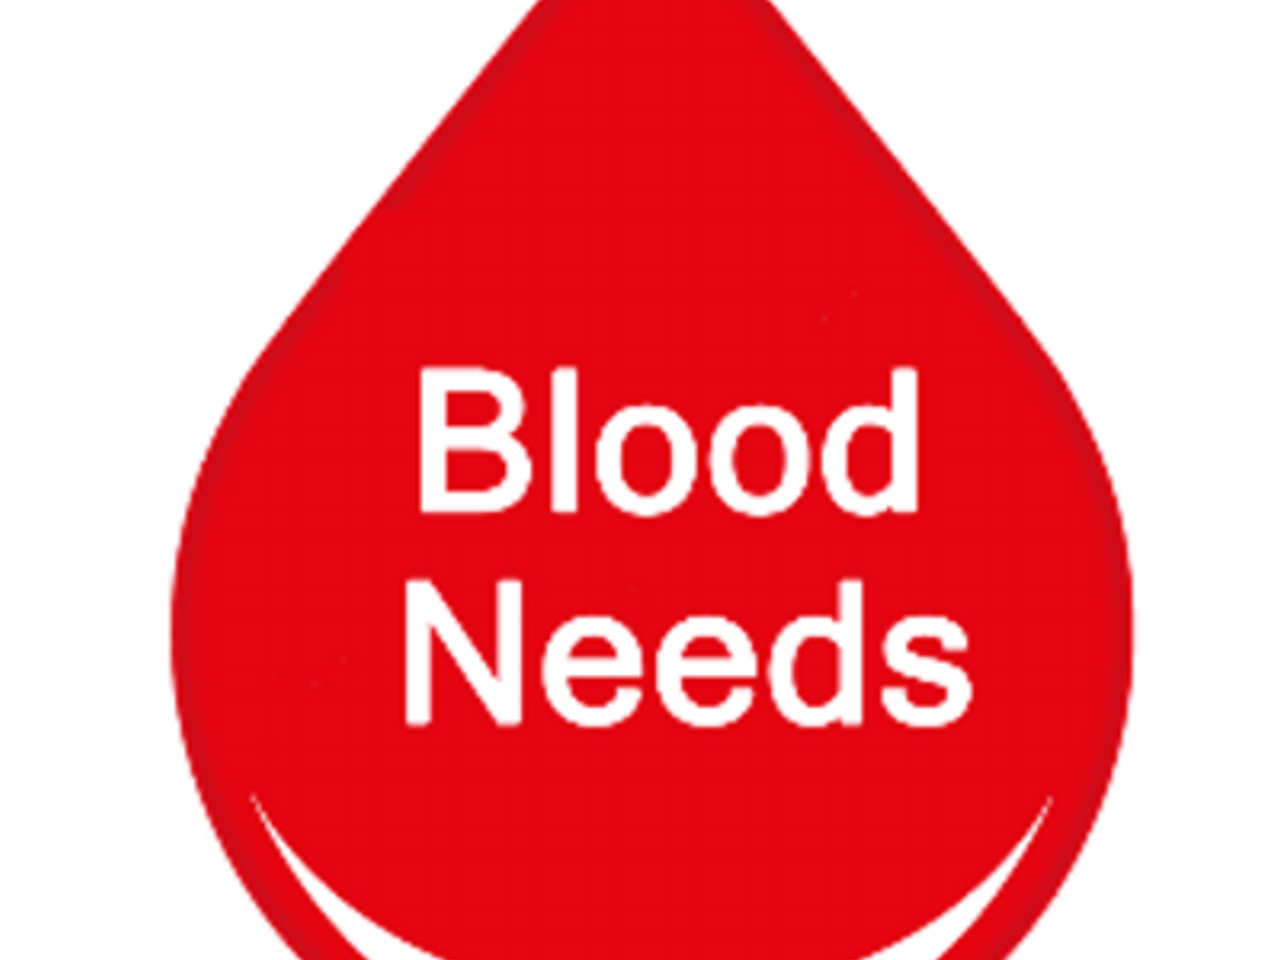 Blood in need